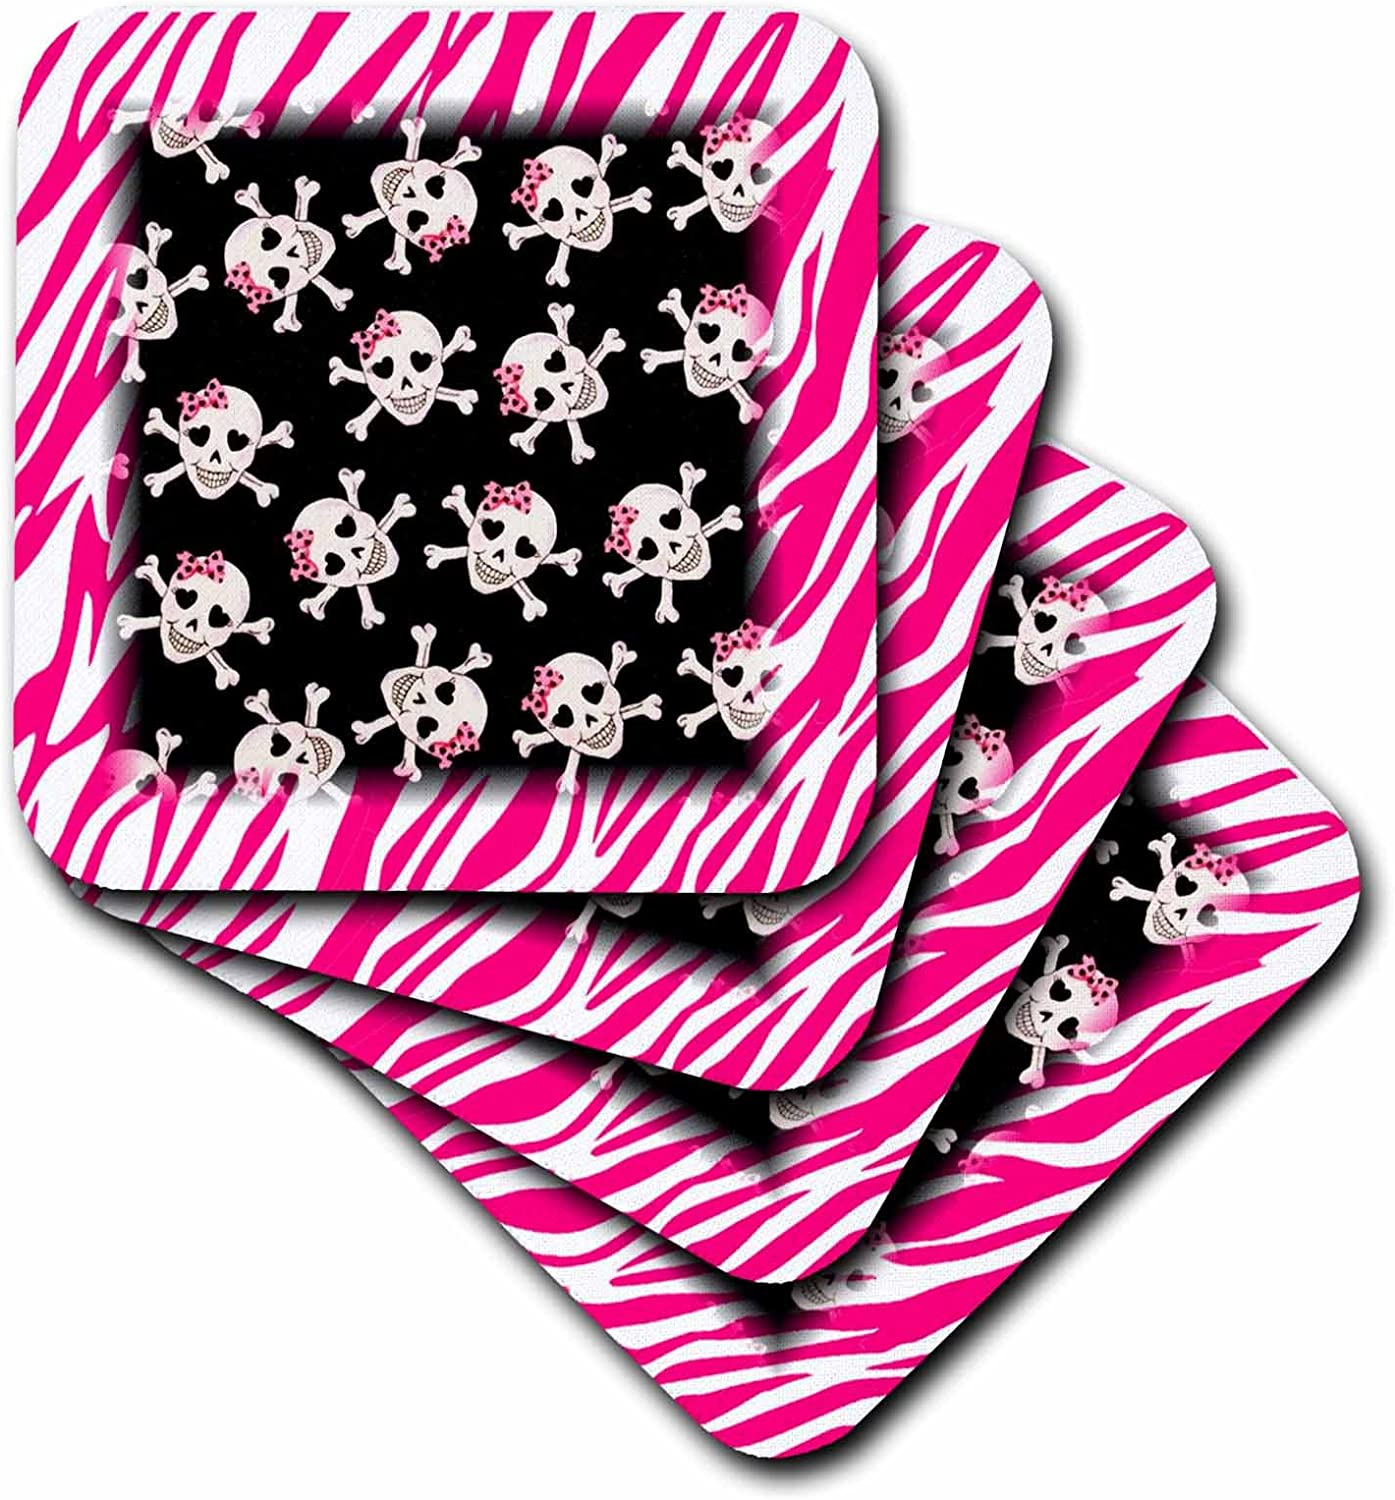 3dRose cst/_61793/_2 Cute Black Skulls with Bows on Pink Zebra-Soft Coasters Set of 8